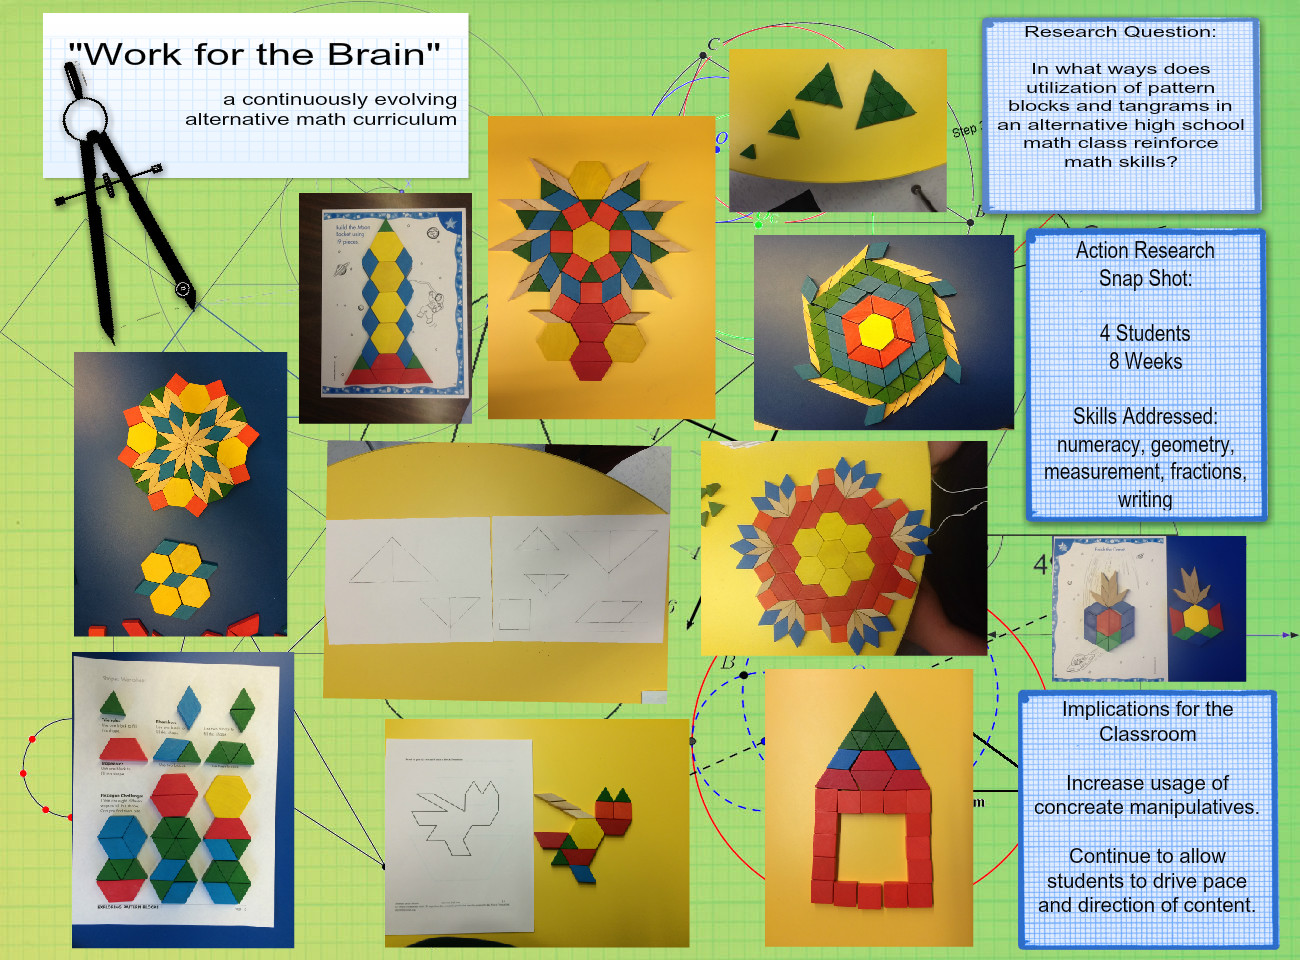 Work for the Brain